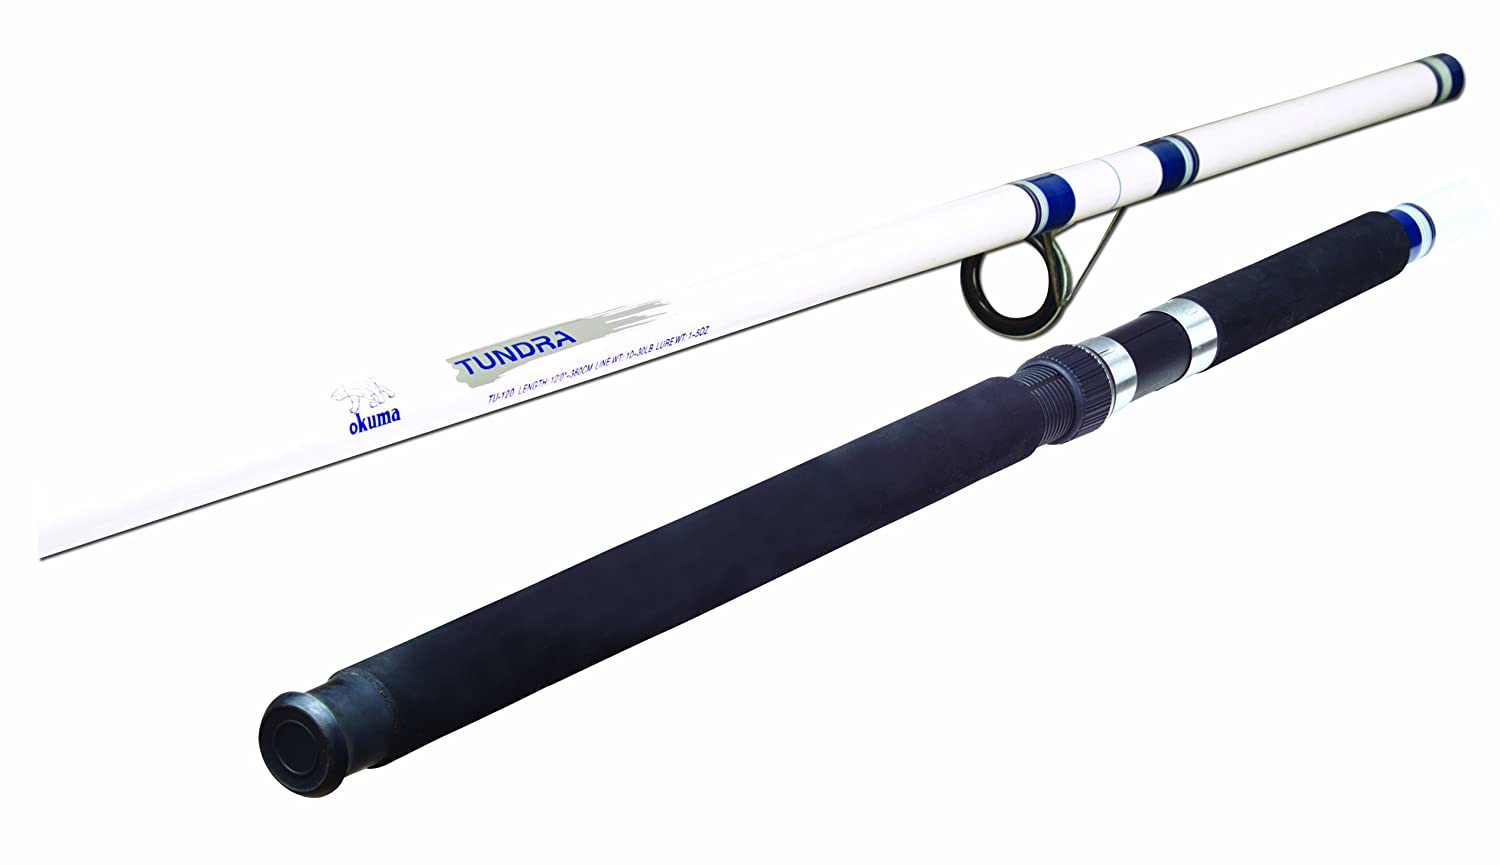 Okuma tundra surf glass spinning rods super fishing for Surf fishing rod and reel